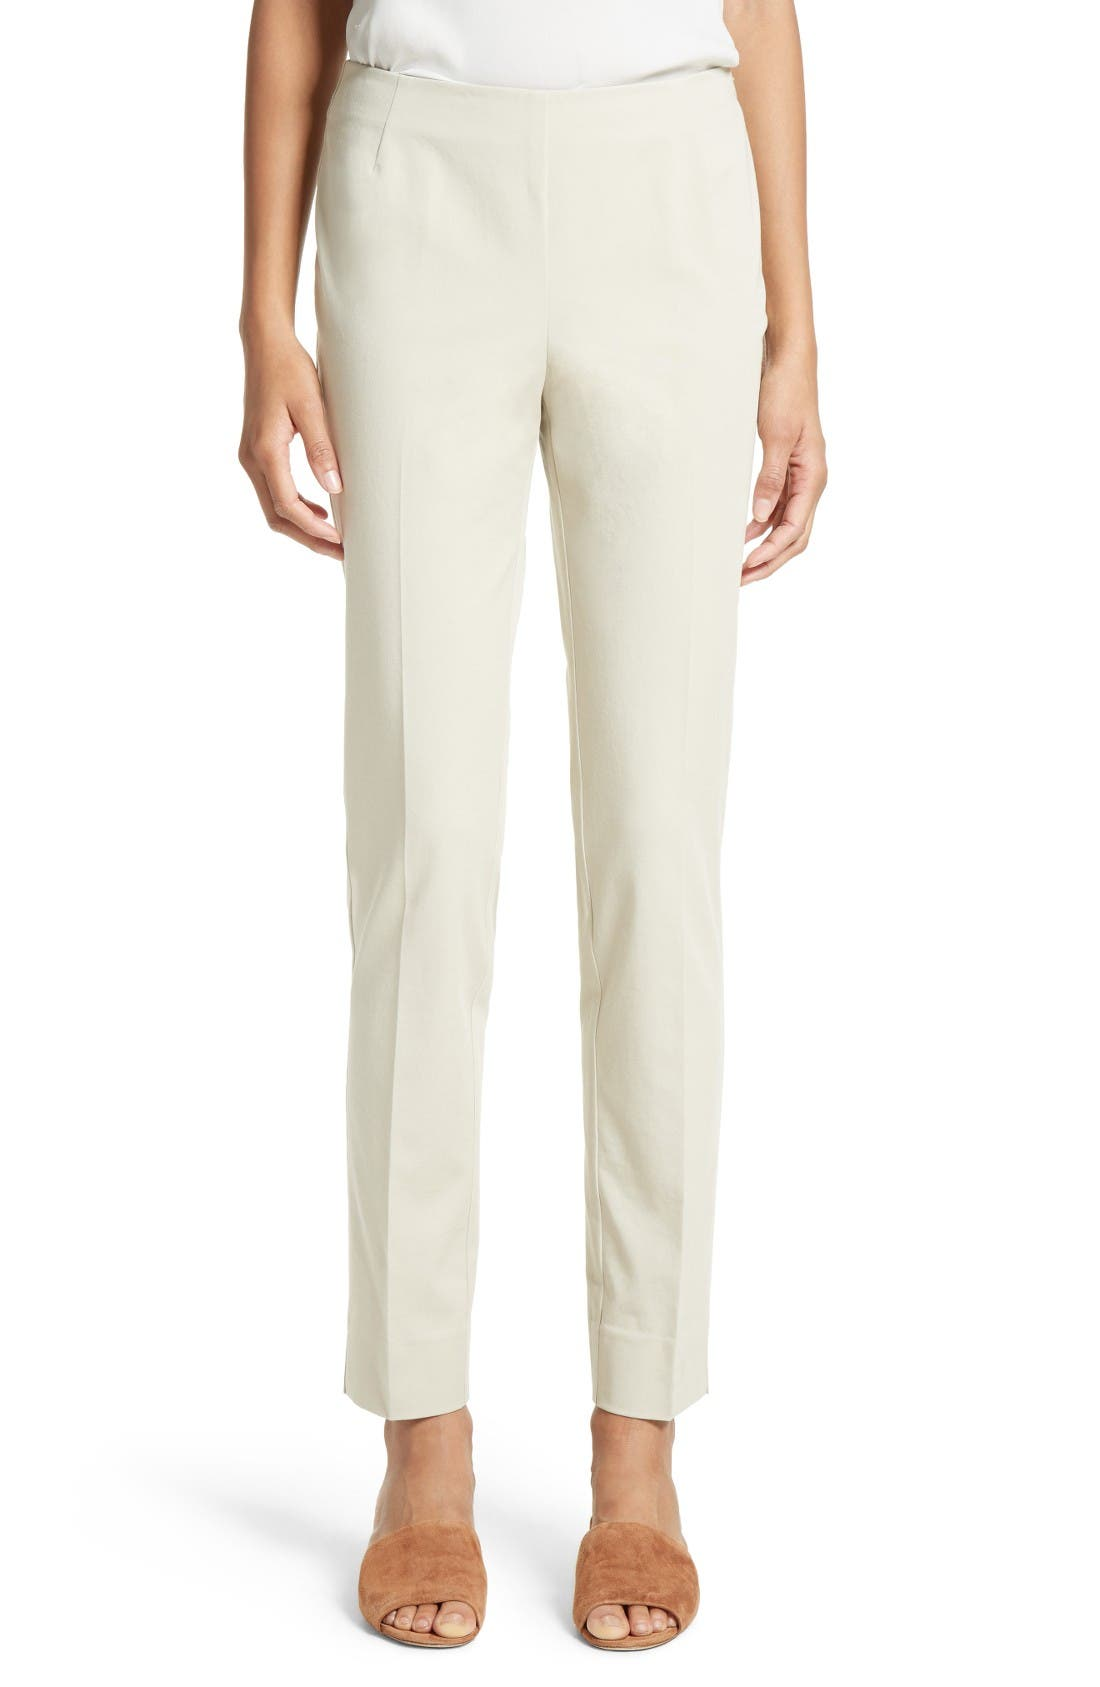 Alternate Image 1 Selected - Lafayette 148 New York 'Chrystie' Stretch Twill Pants